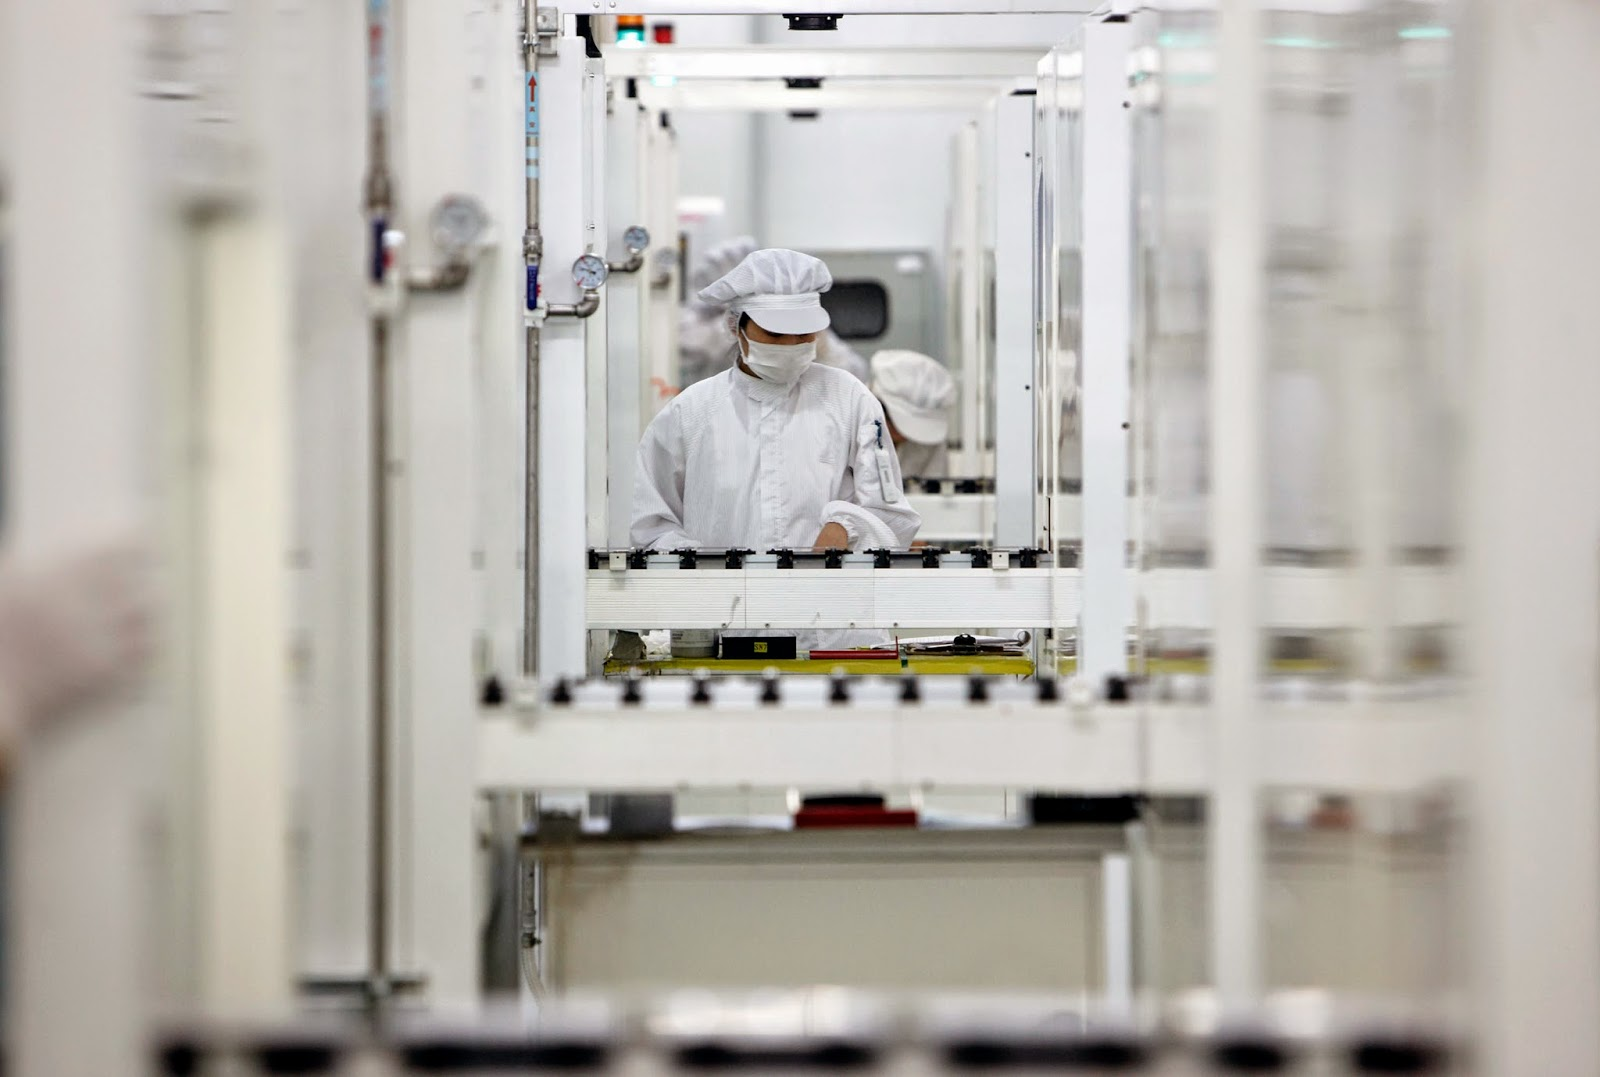 Workers operate on the assembly line that makes photovoltaic cells, the main energy generating component of a solar panel, at the Suntech Power Holdings Co. factory in Wuxi, China. (Credit: Qilai Shen/Bloomberg) Click to enlarge.